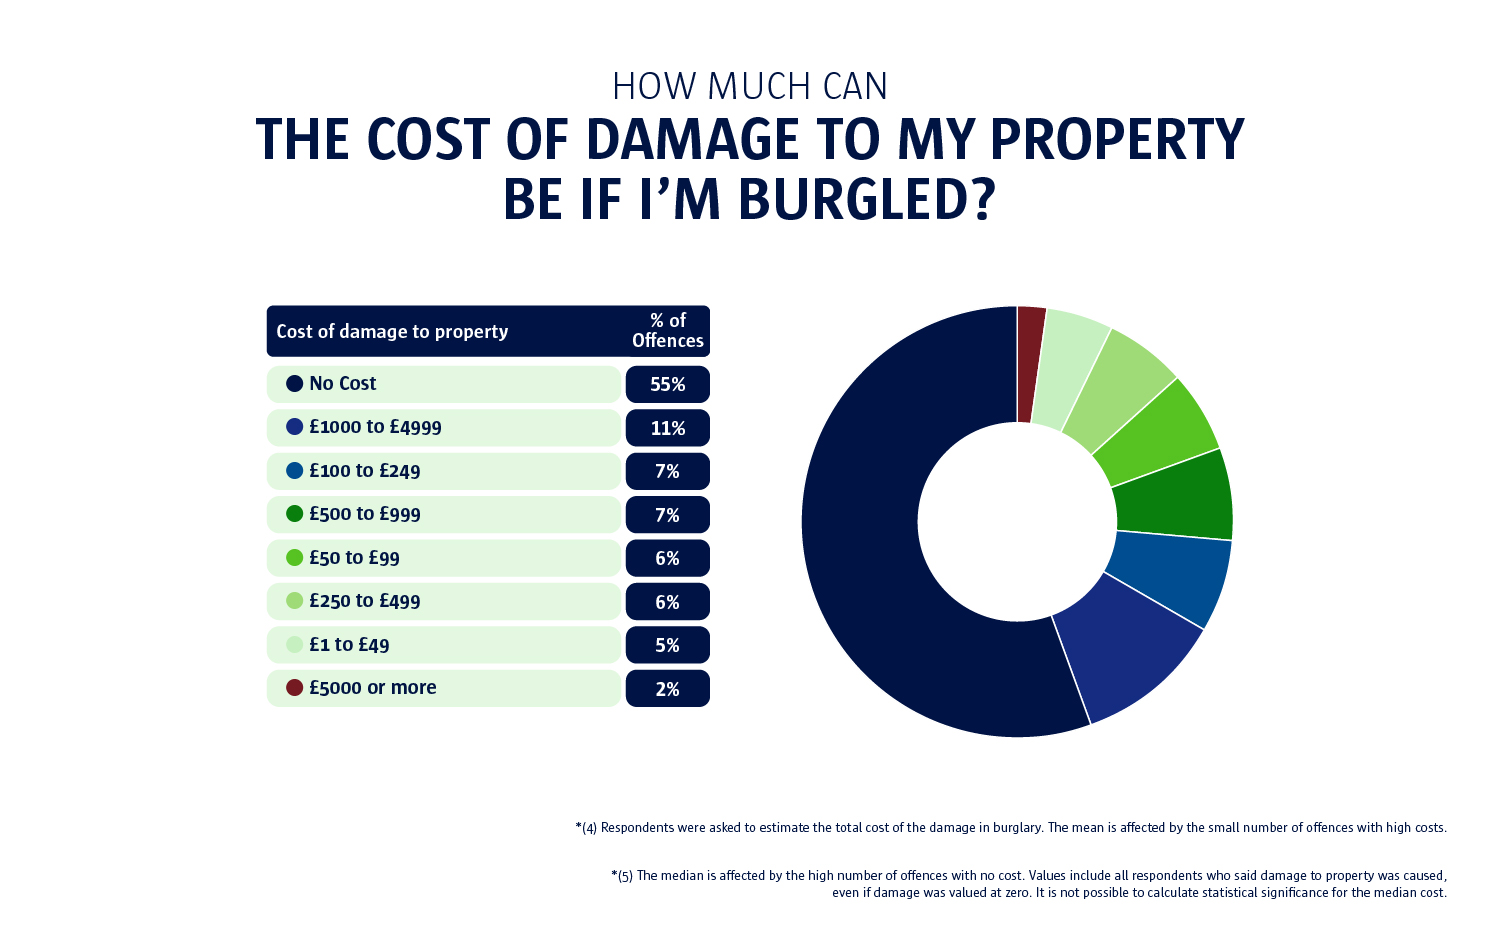 the cost to properties if burgled